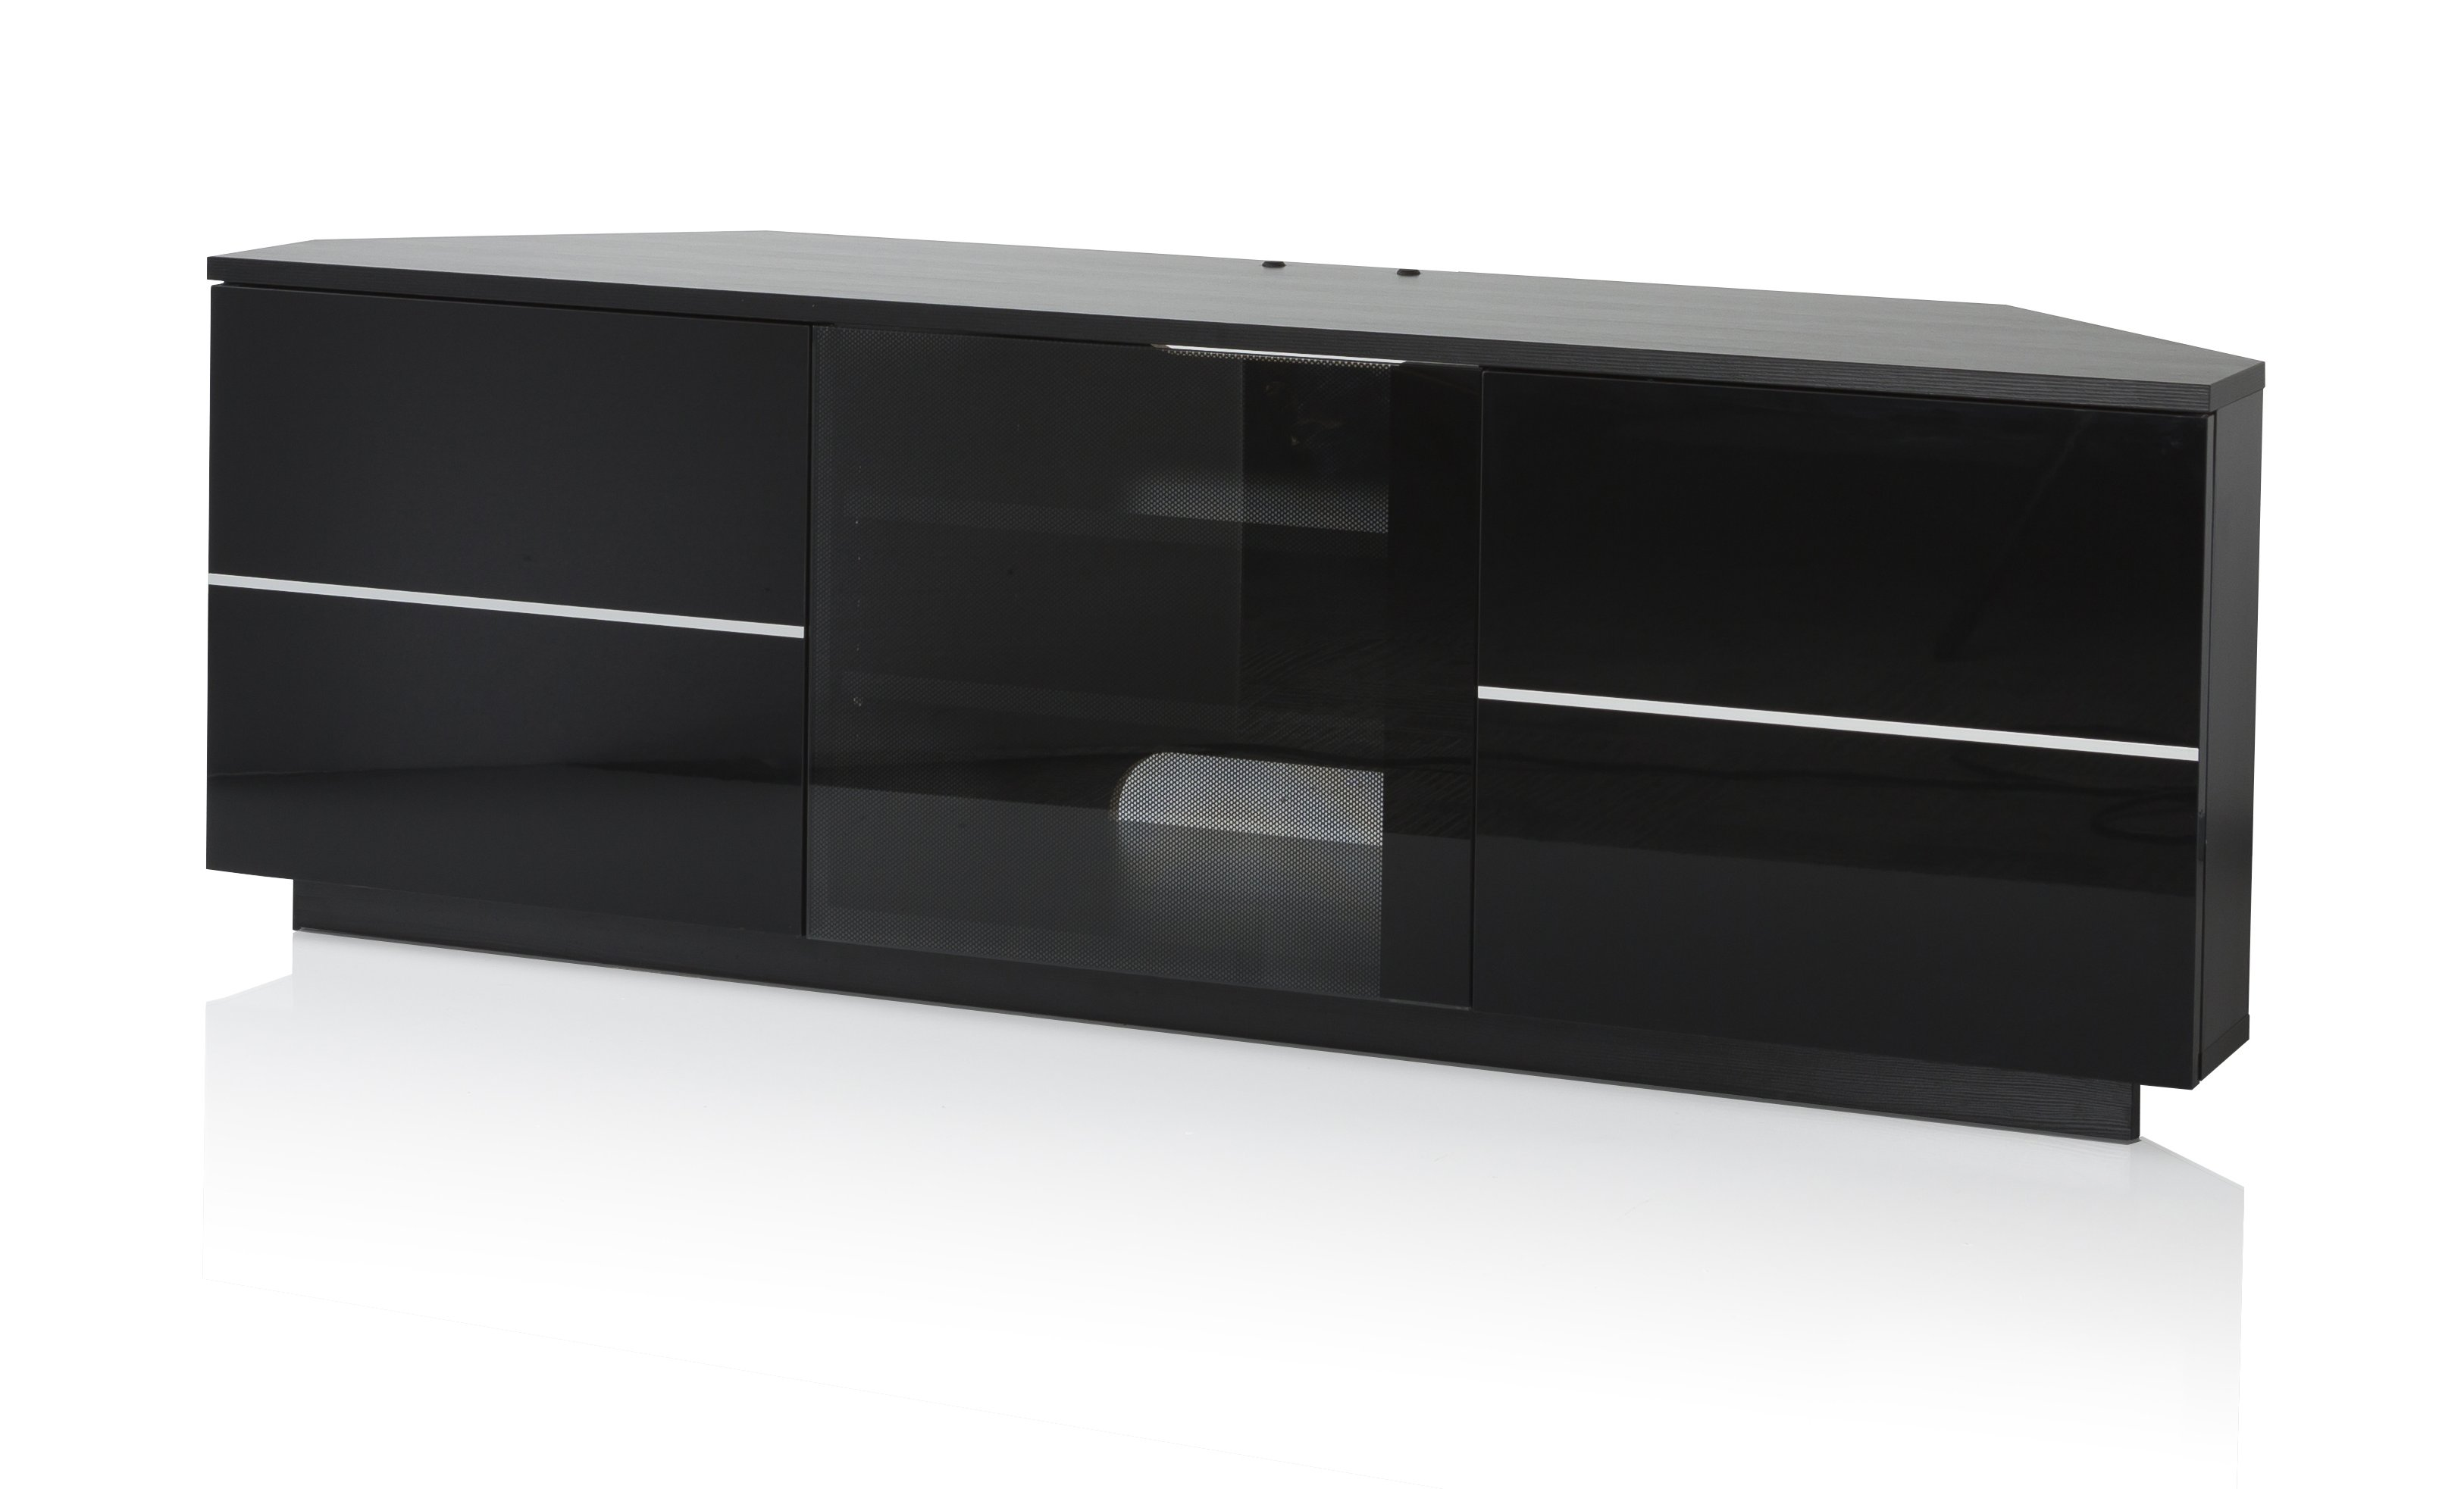 Avf Furniture Black Tv Stand | www.galleryhip.com - The Hippest Pics